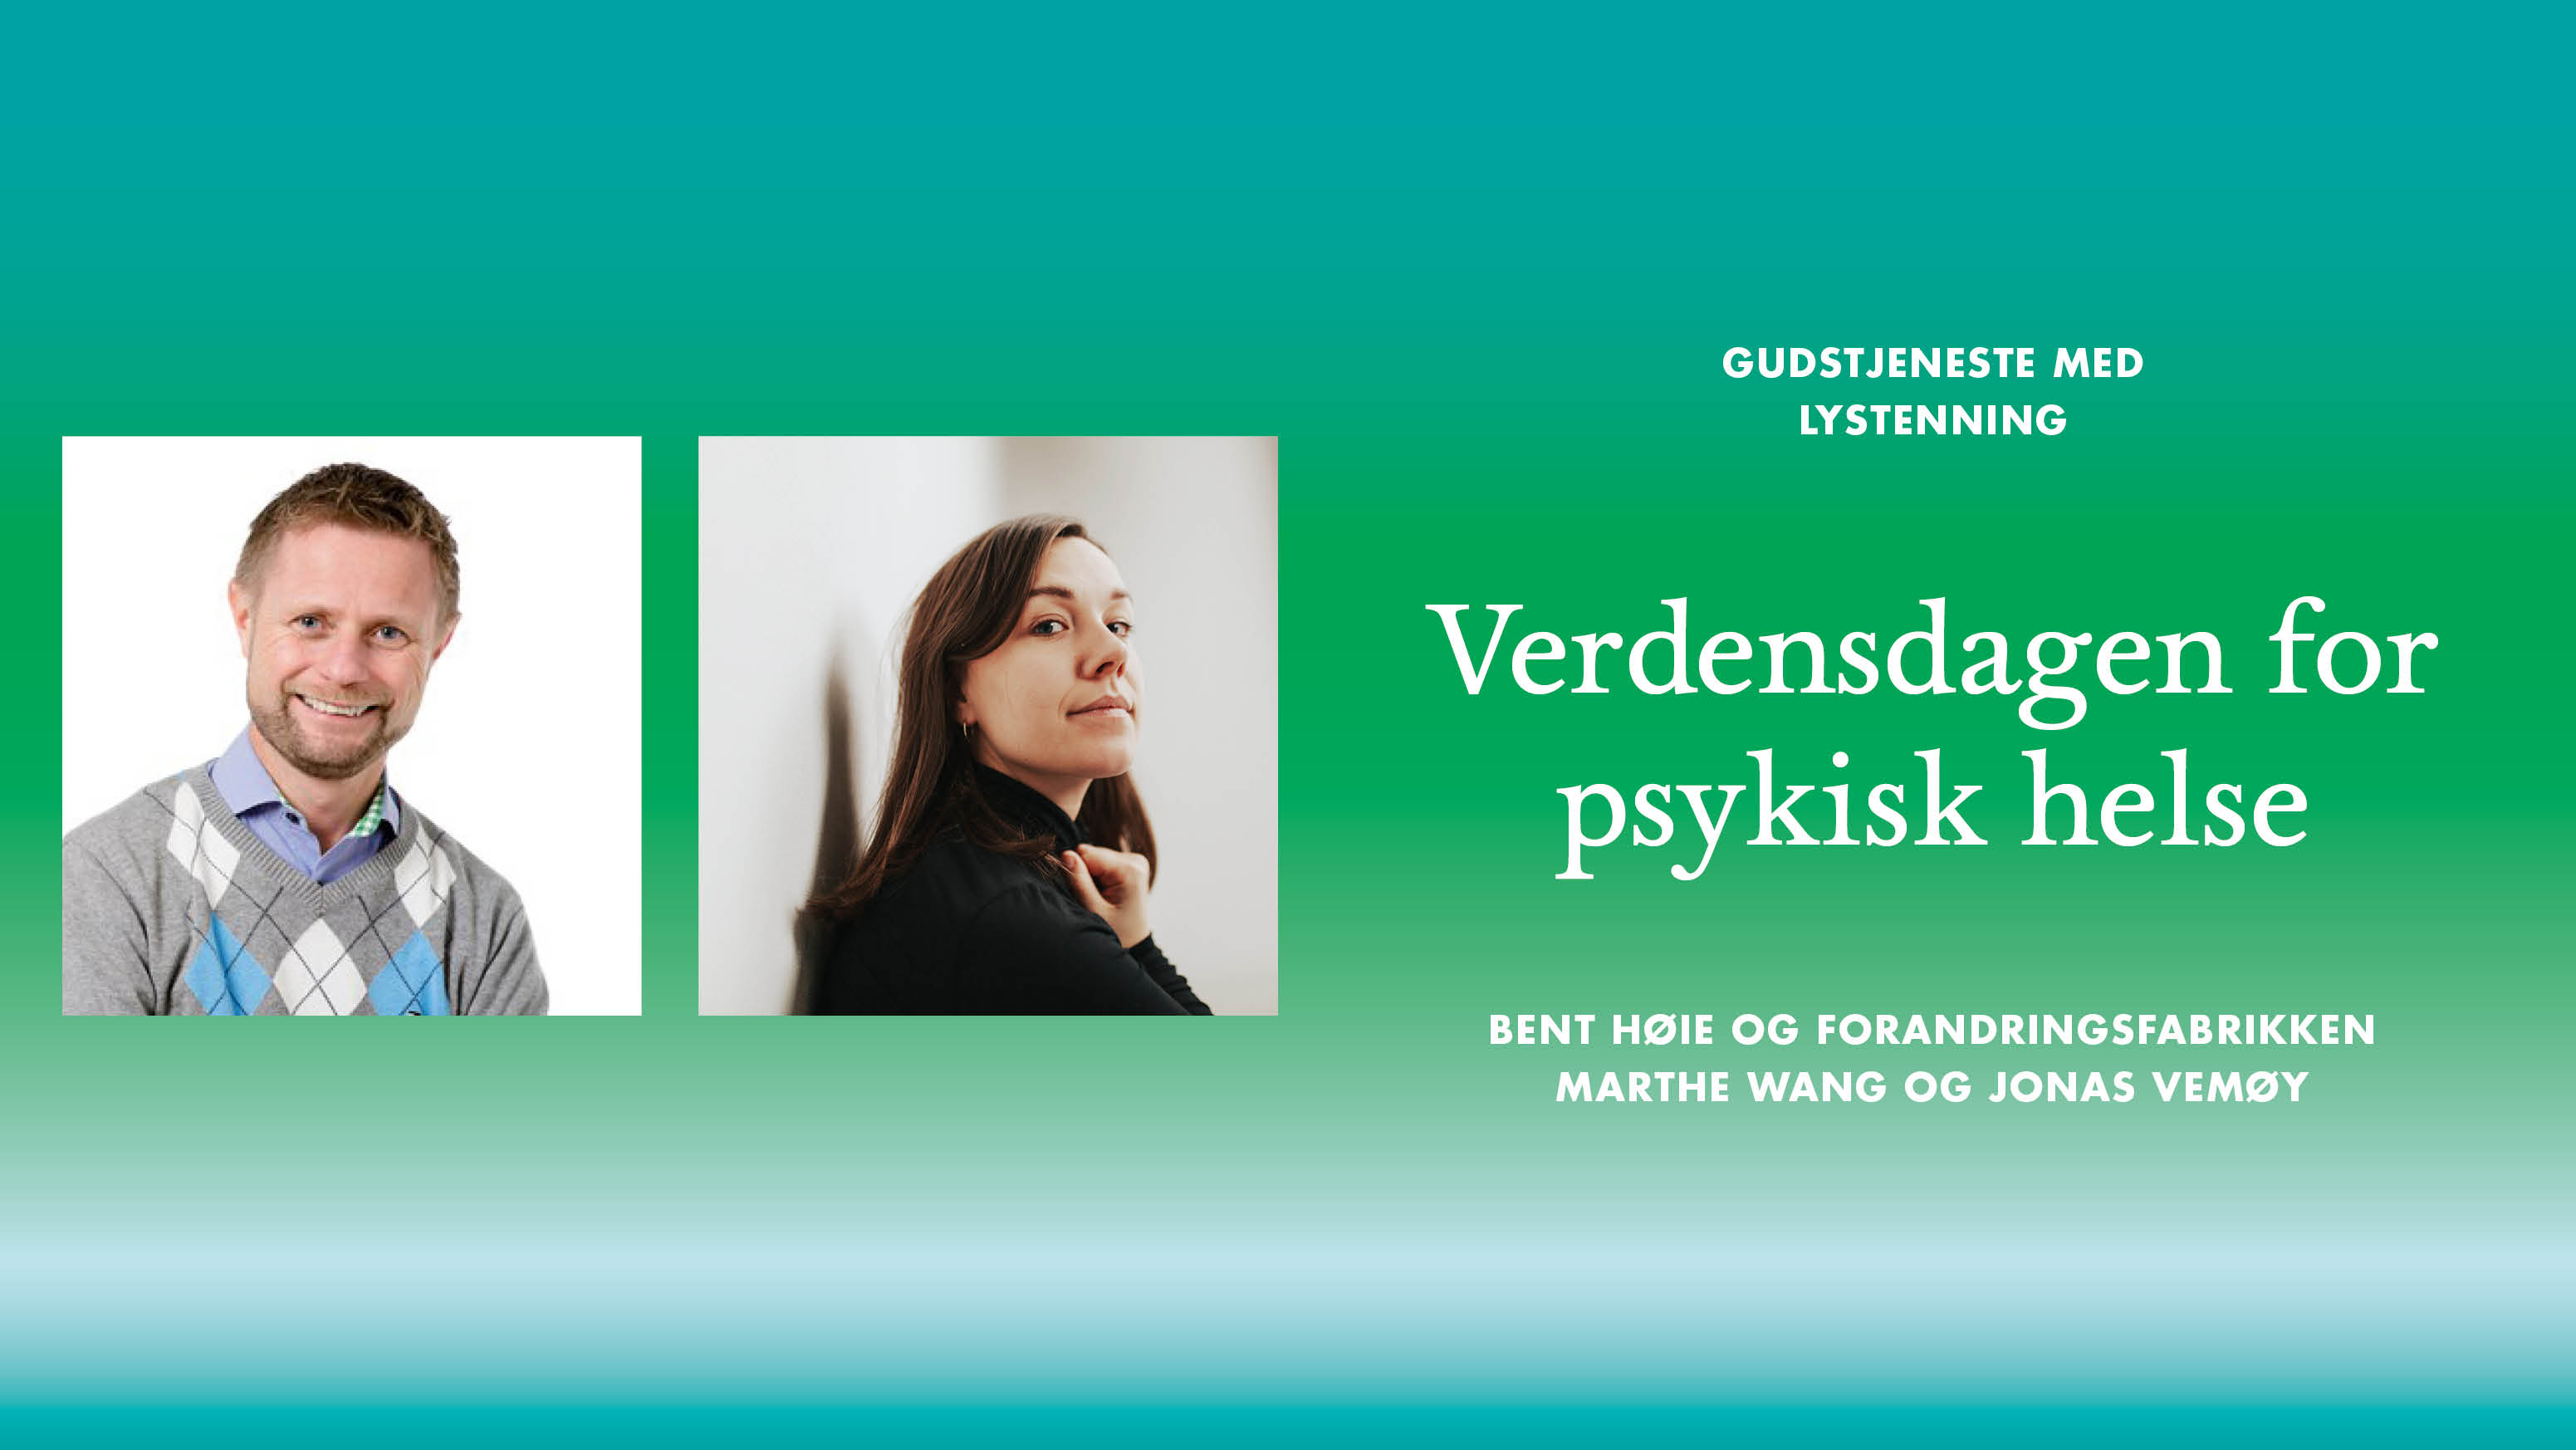 Verdensdagen for psykisk helse 2019